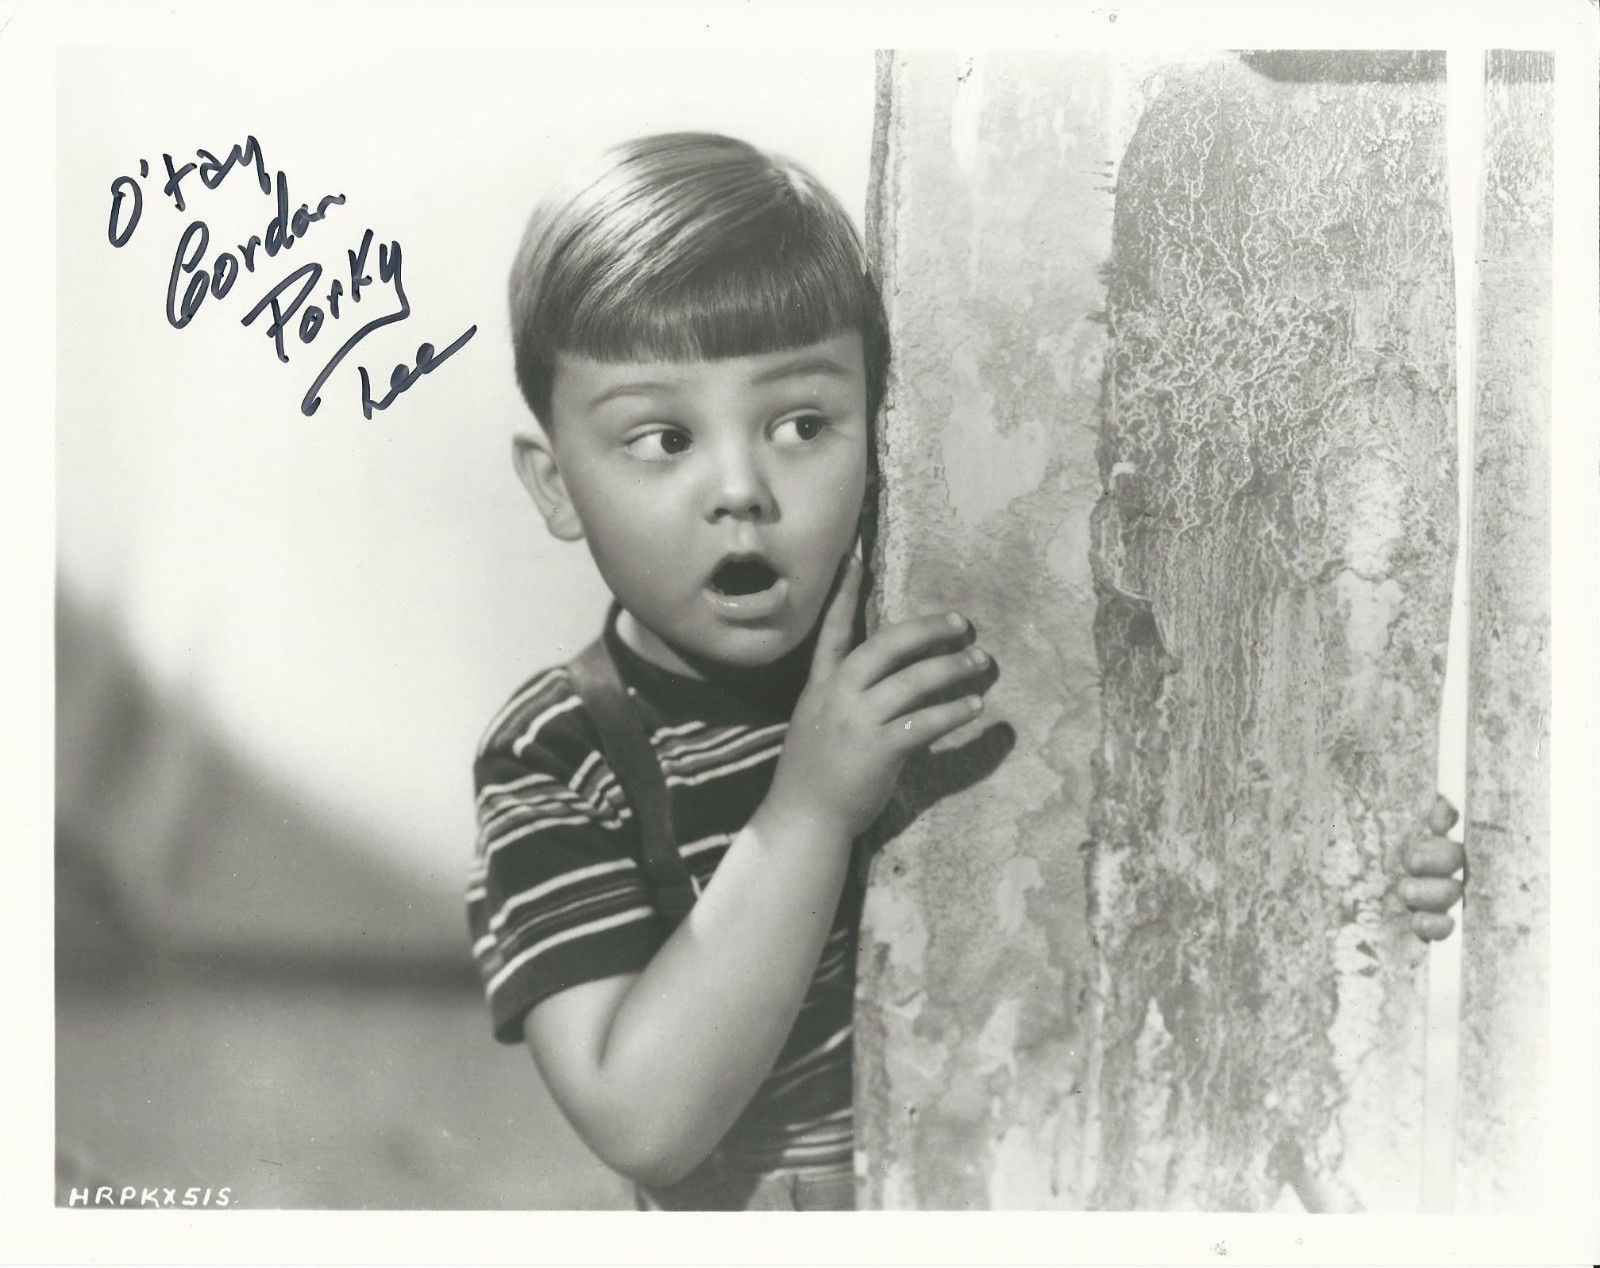 EUGENE_GORDON_LEE_Hand_Signed_8x10_PORKY_Photo_With_COA_-_LITTLE_RASCALS